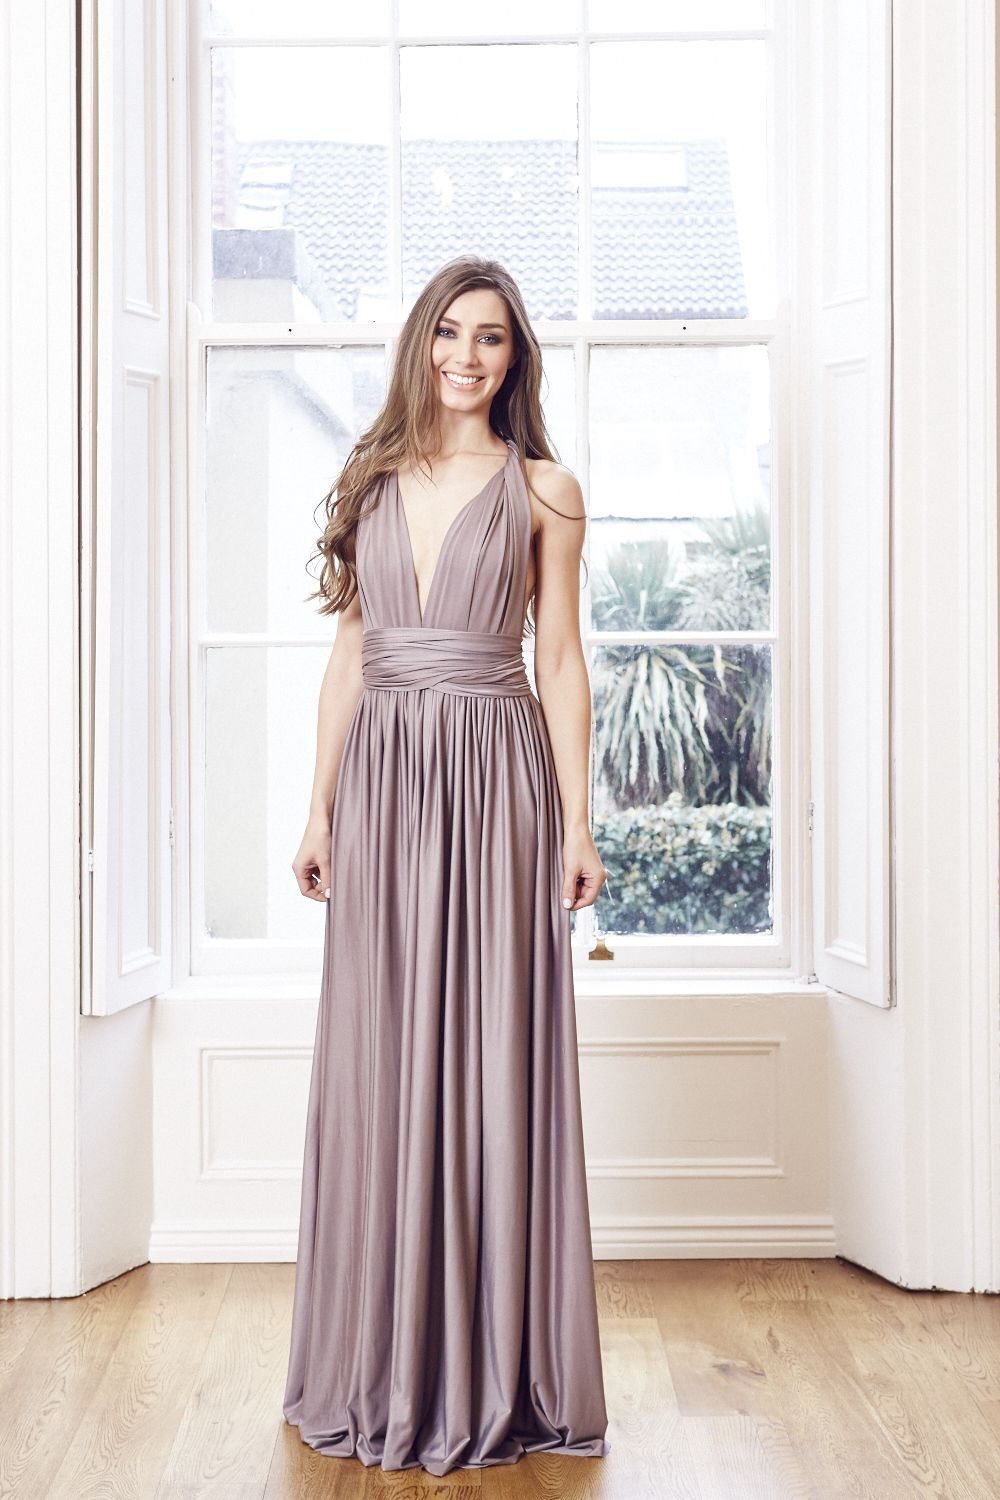 Our stunning mink multi wrap dress is definitely a wardrobe staple our stunning mink multi wrap dress is definitely a wardrobe staple it is the perfect dress for bridesmaids maternity wear or anyone who is attending a ombrellifo Image collections